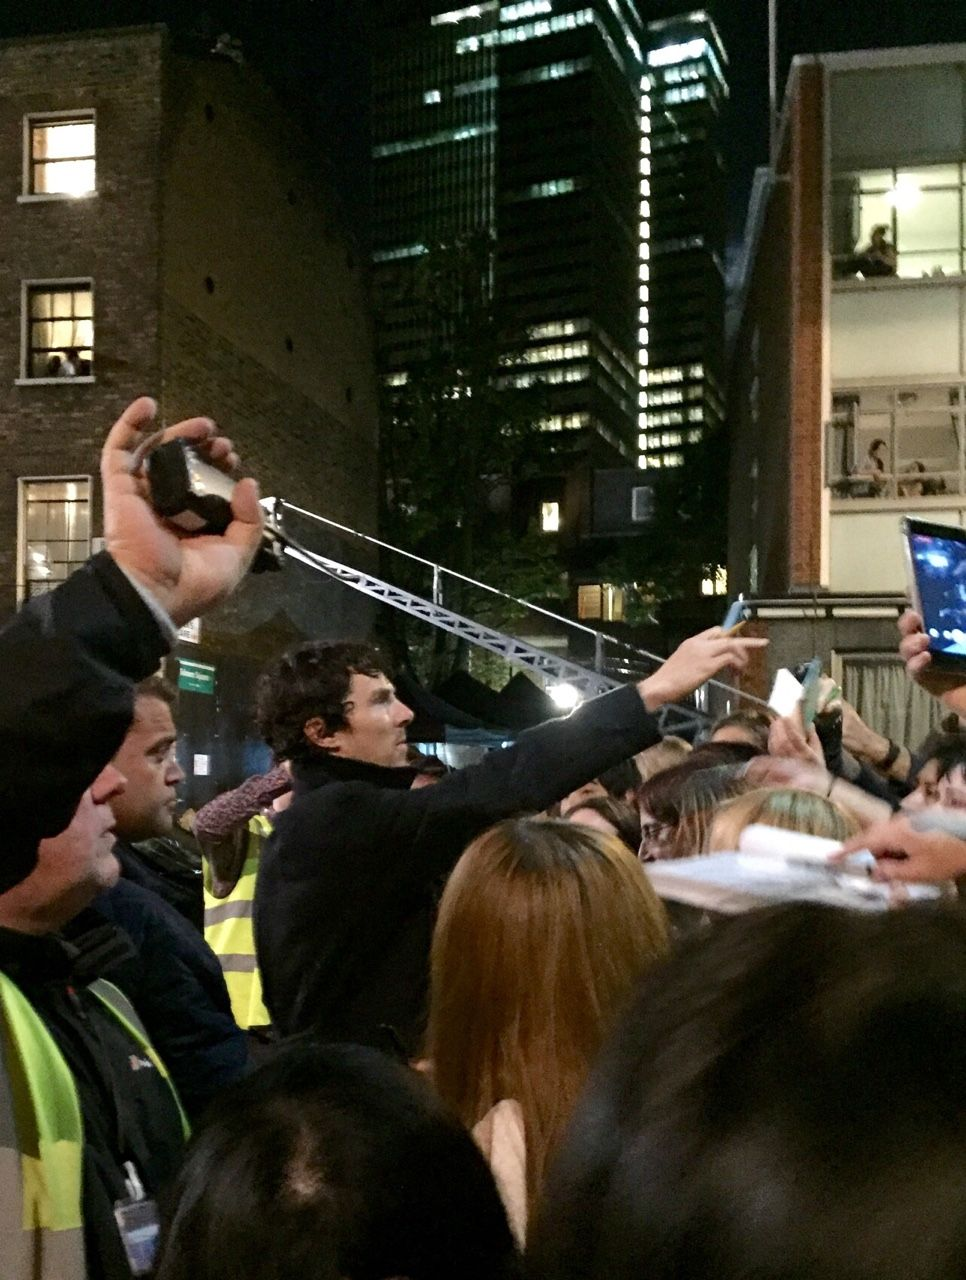 Benedict Cumberbatch and fans Setlock, North Gower Street, June 12th 2016